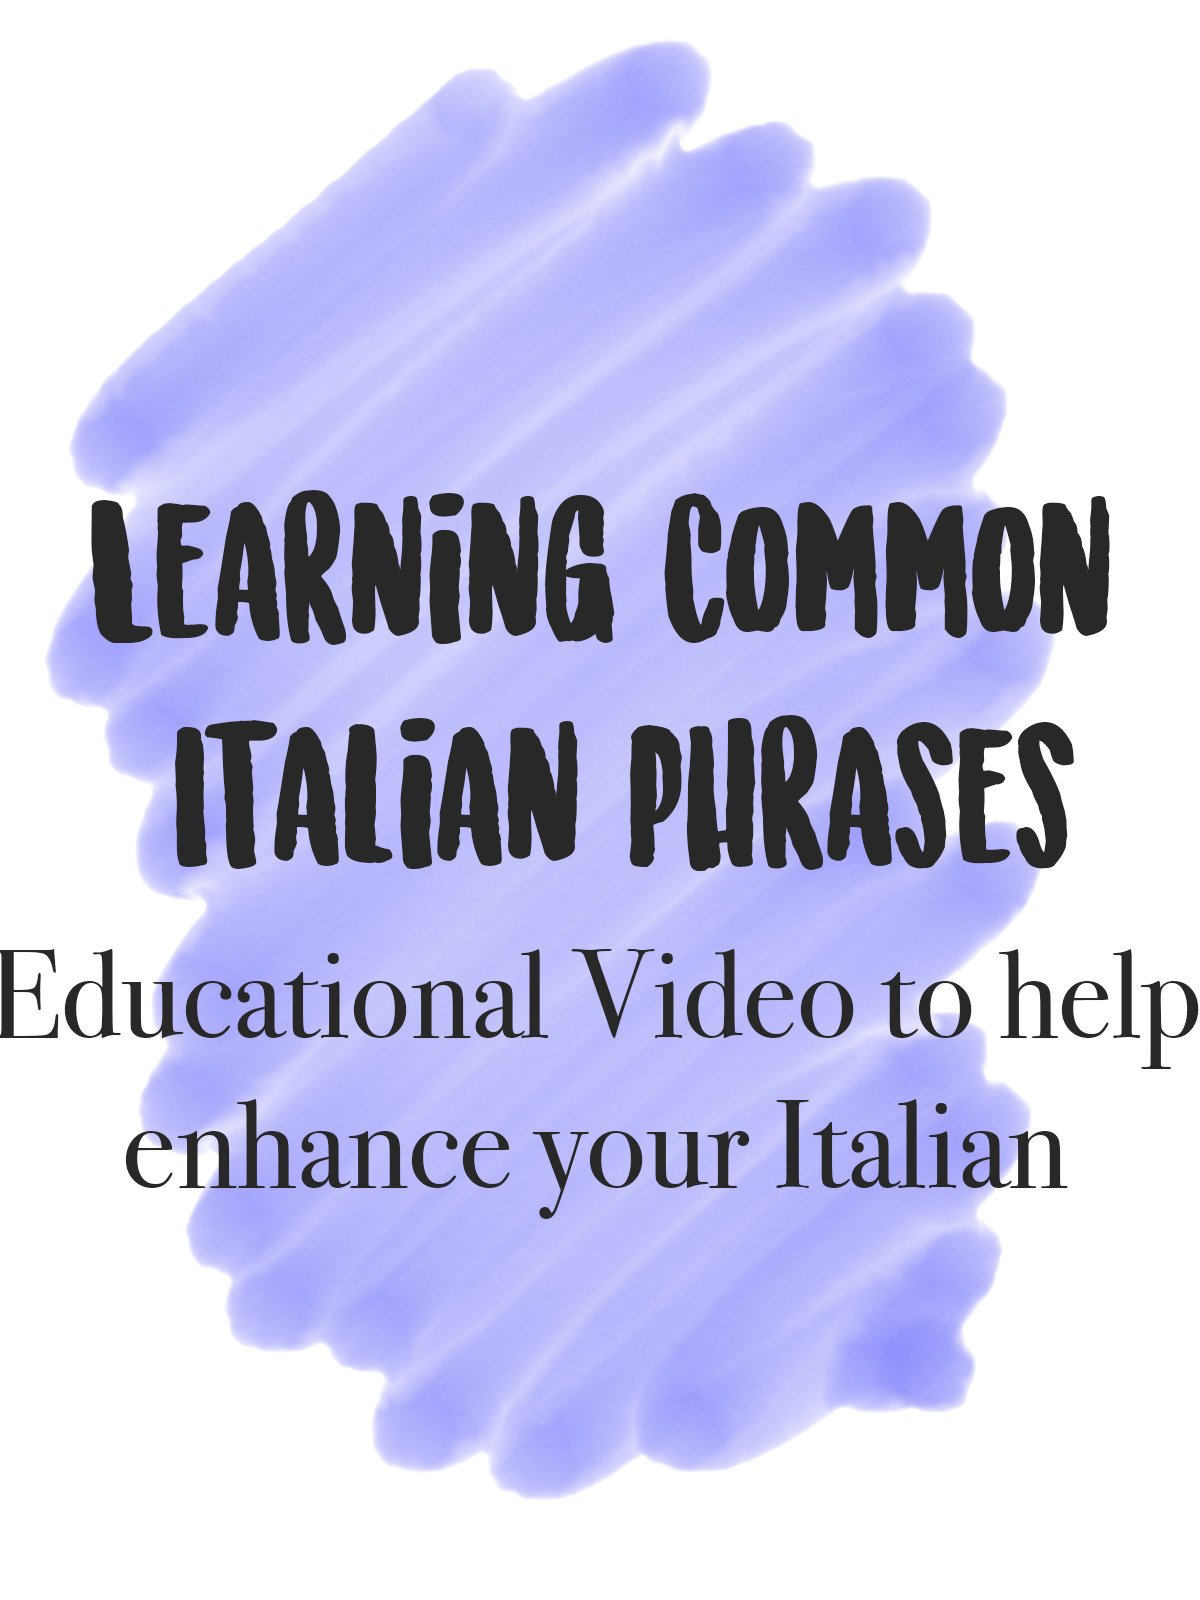 Learning Common Italian Phrases Educational Video to help Enhance your Italian